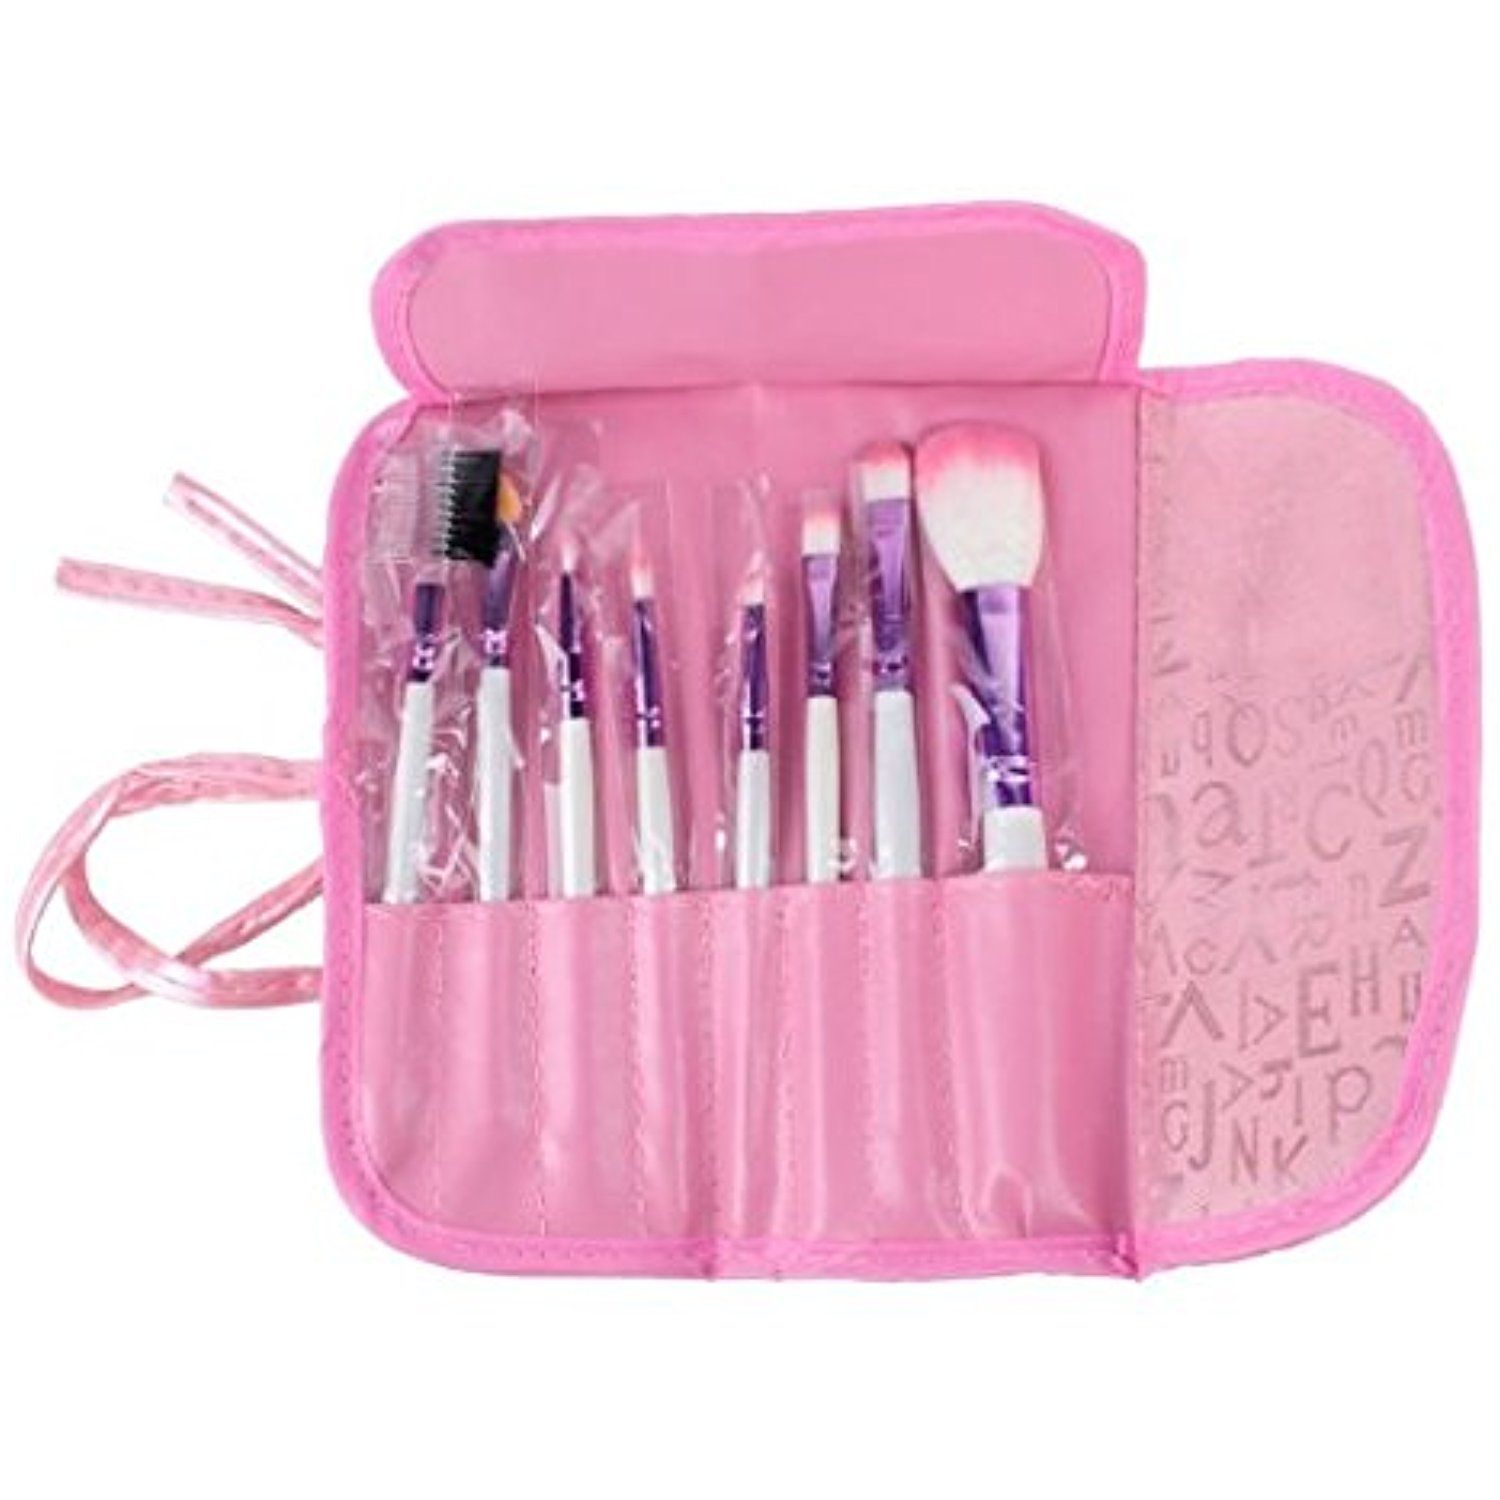 32 piece Set Make Up Brushes with Pouch Bag, Pink Boutique